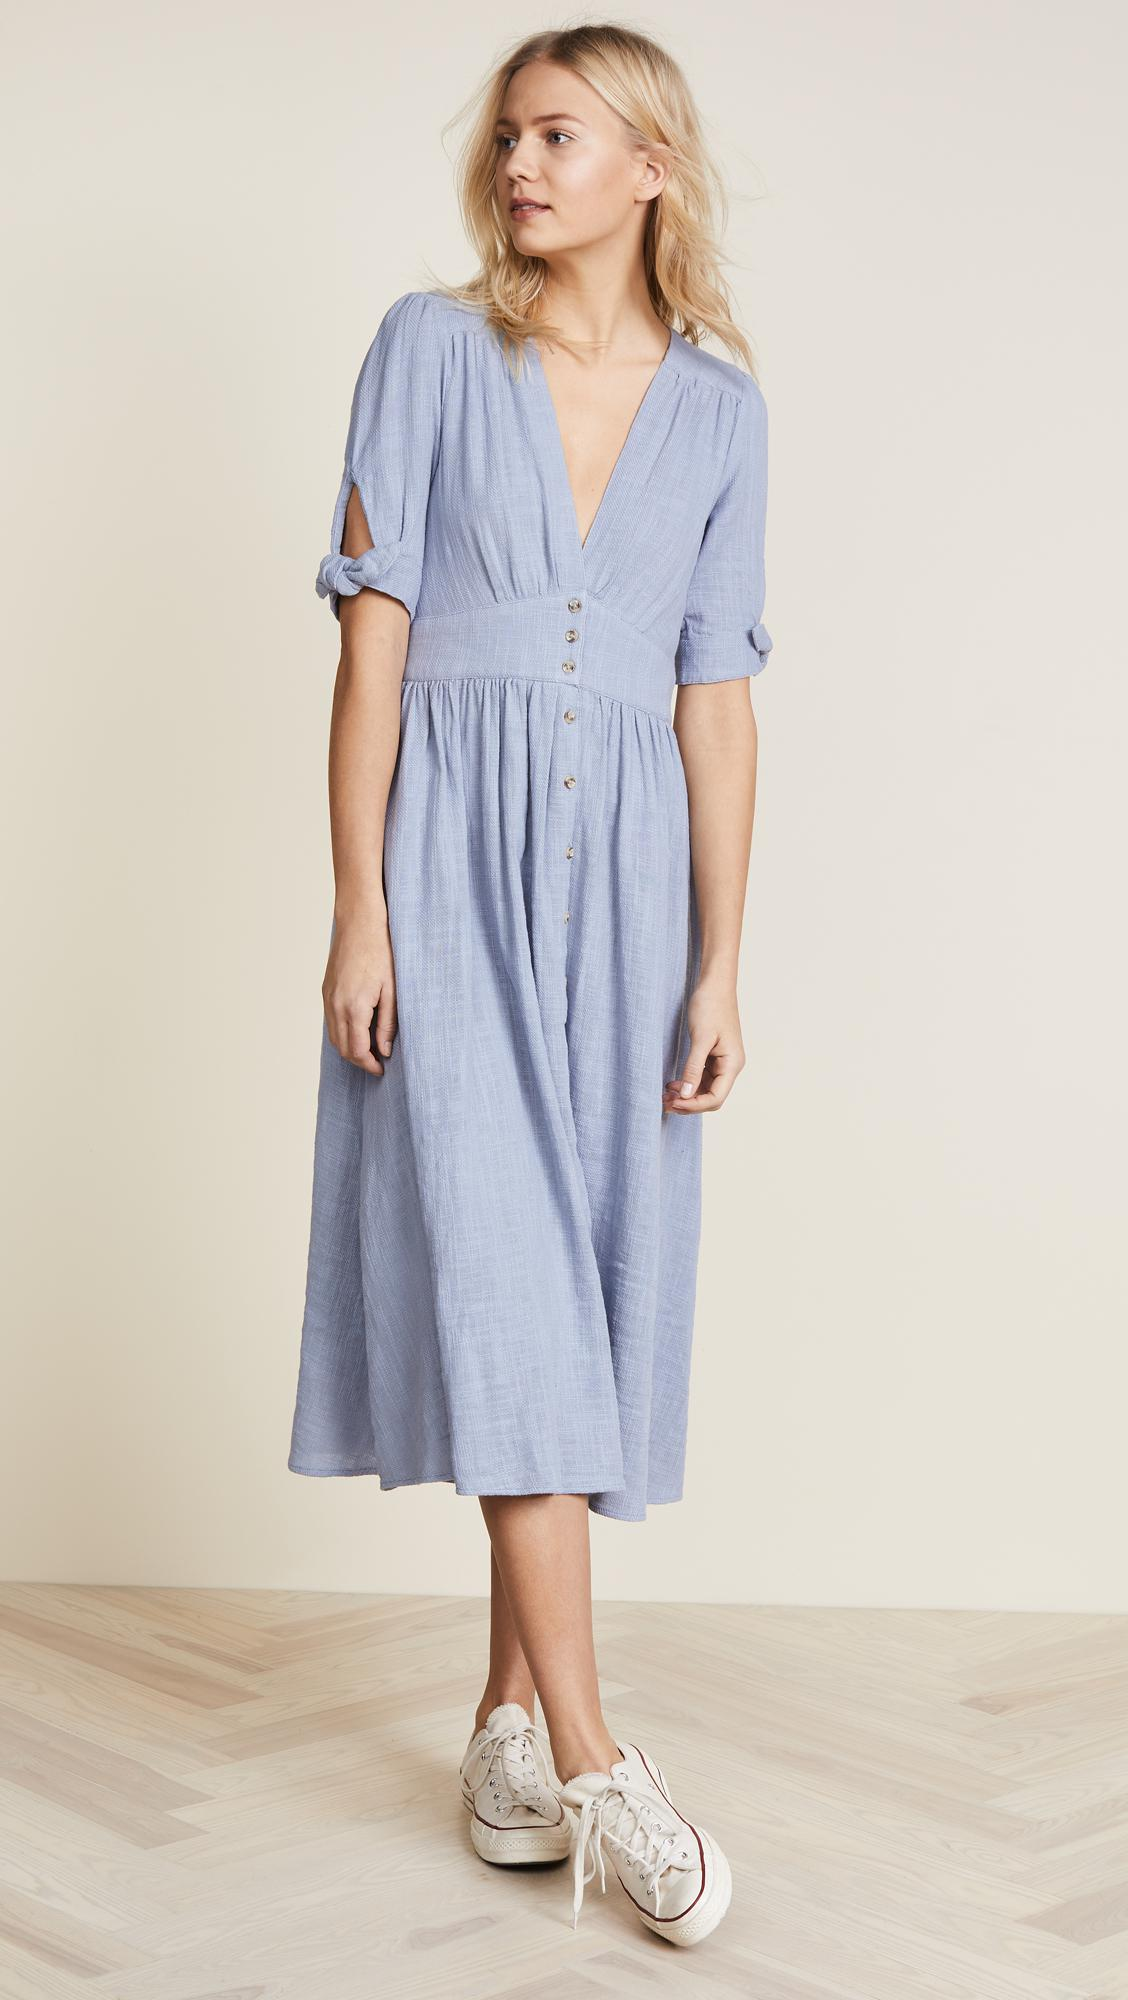 Free People Love Of My Life Dress in Blue - Lyst 7a9cffbe3